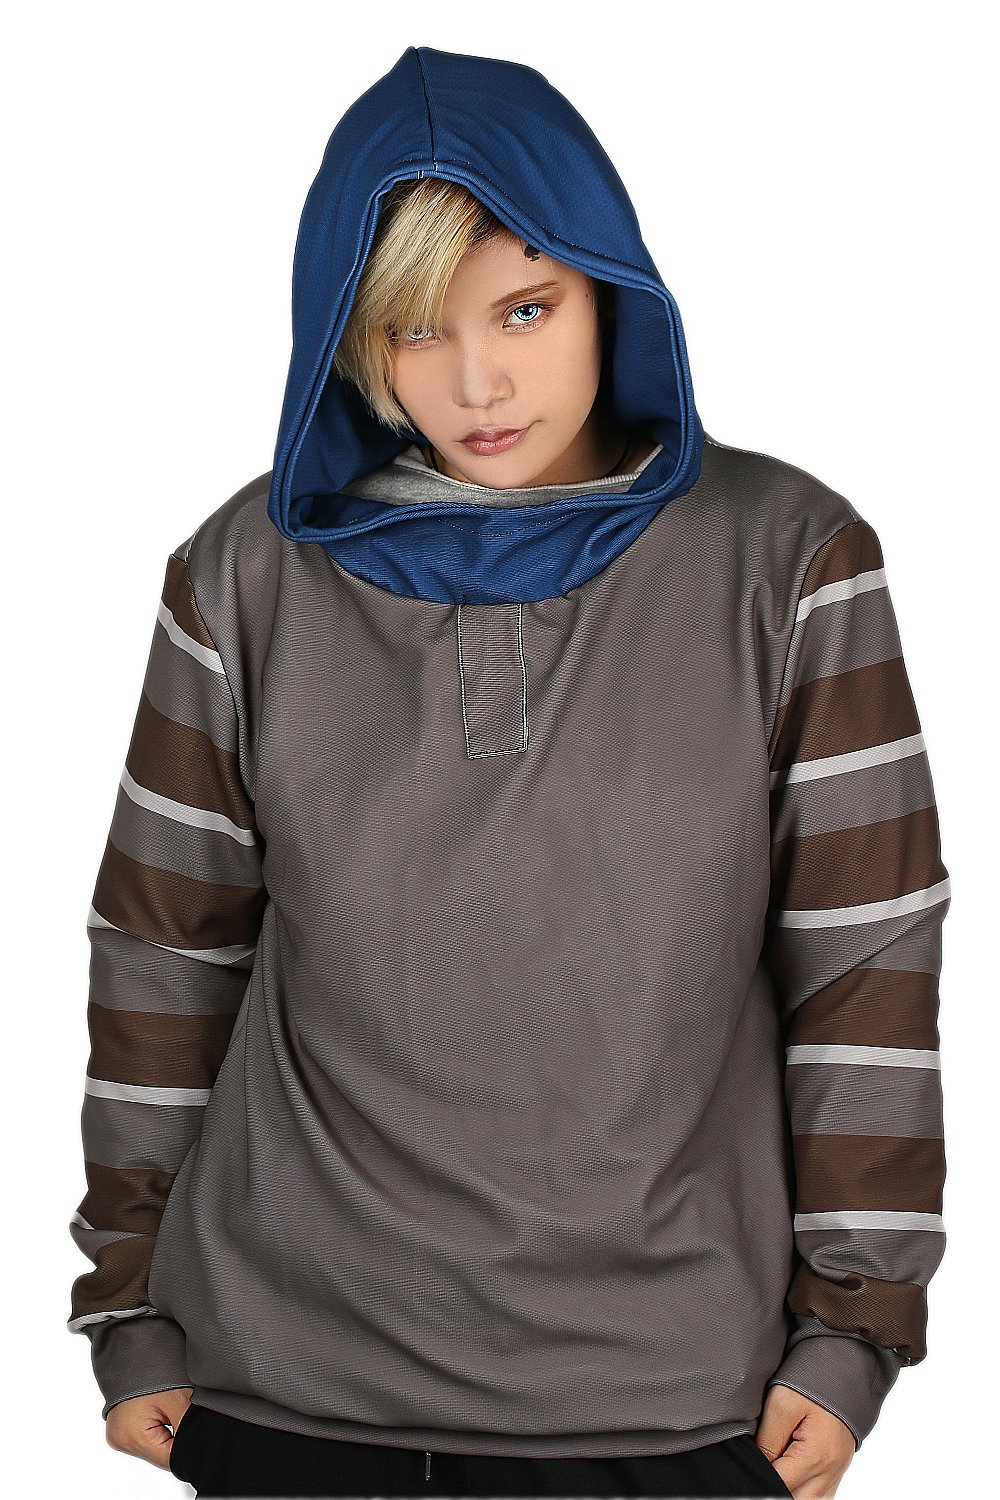 Creepypasta Ticci Toby Cosplay Costume hoodie jacket only